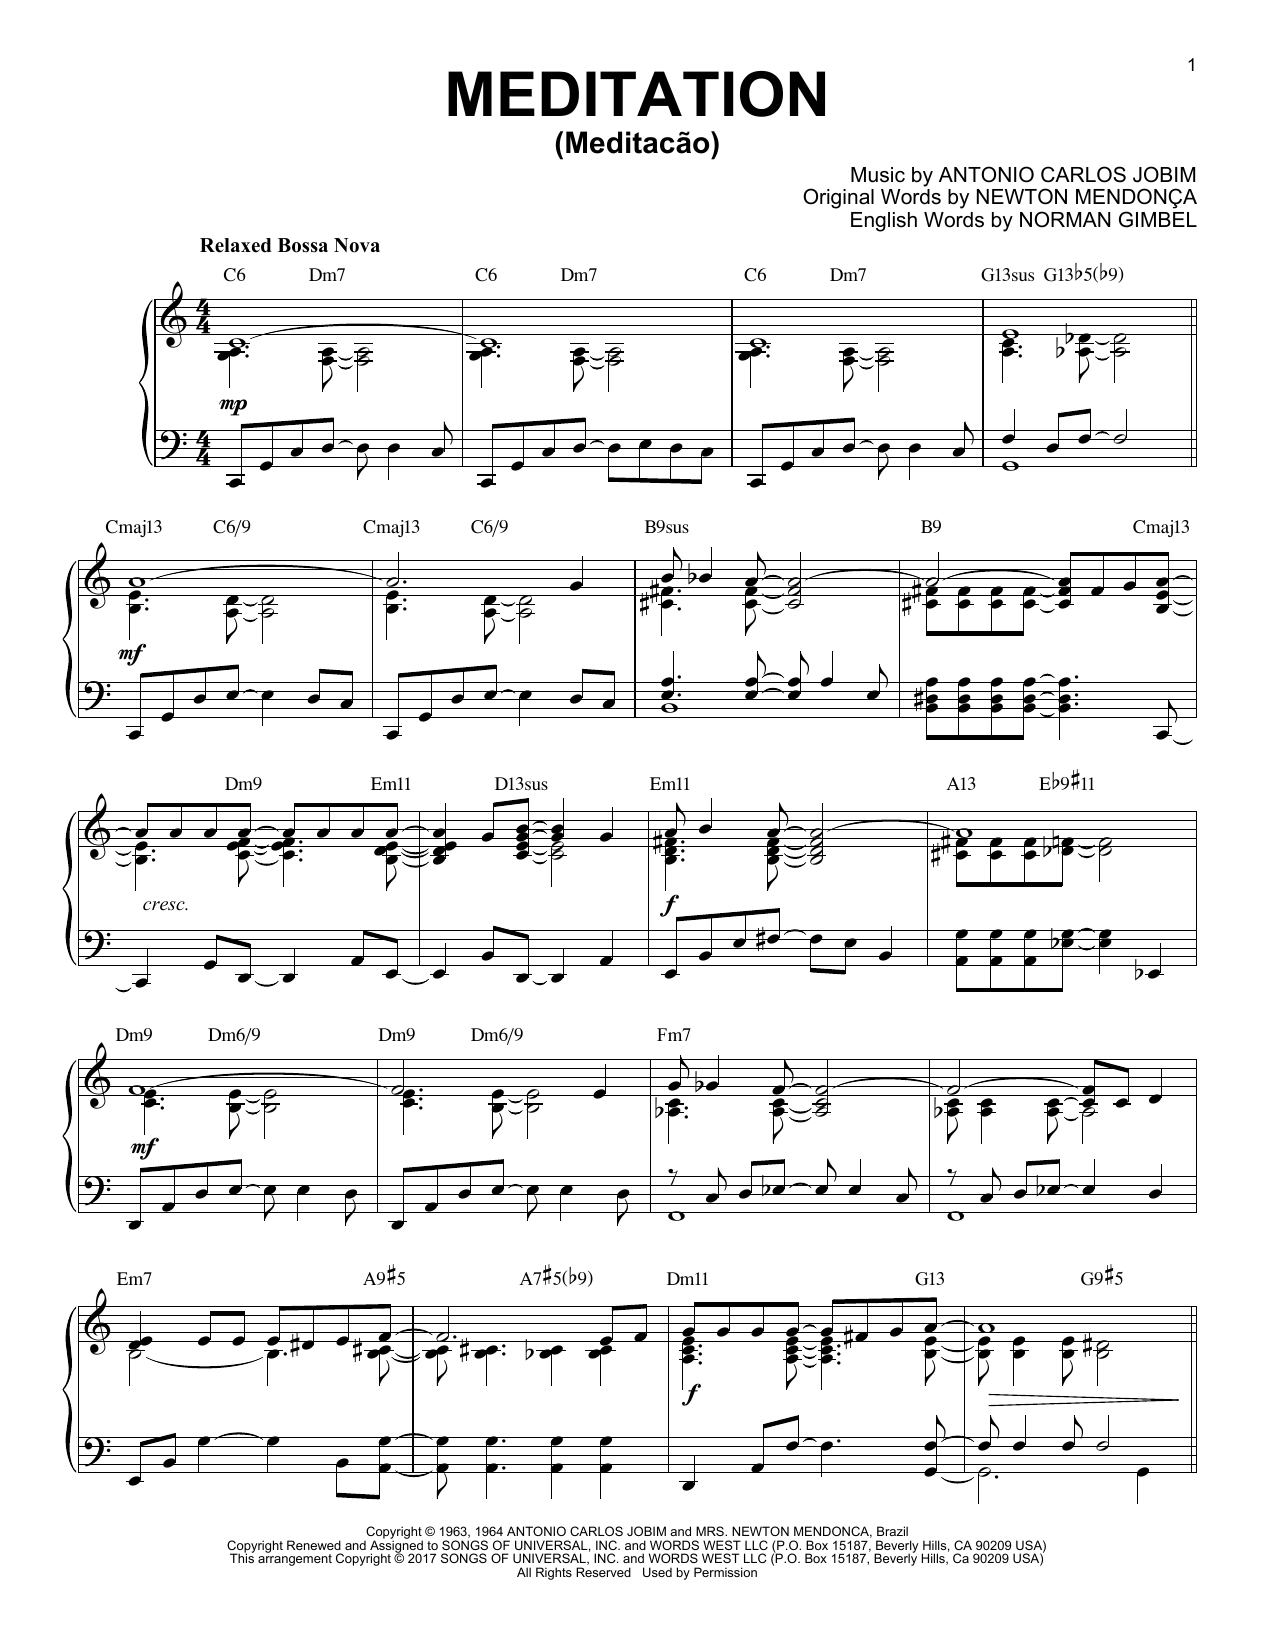 Download Antonio Carlos Jobim 'Meditation (Meditacao)' Digital Sheet Music Notes & Chords and start playing in minutes